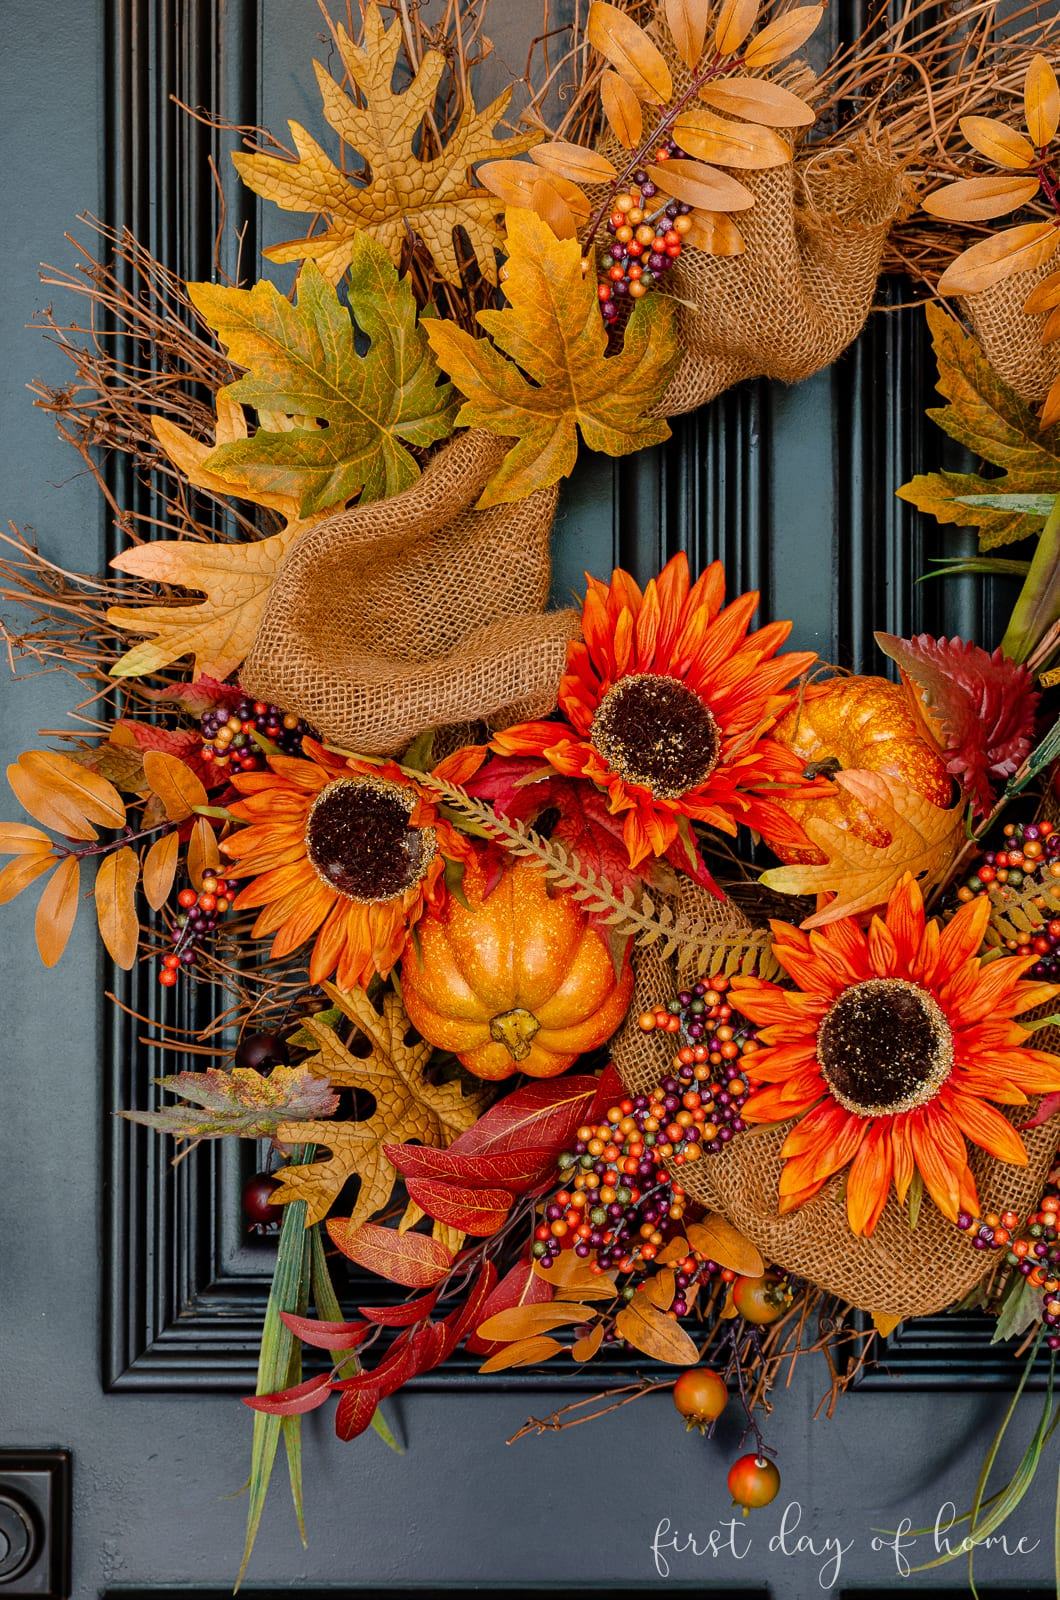 Fall grapevine wreath with pumpkins, leaves and sunflowers